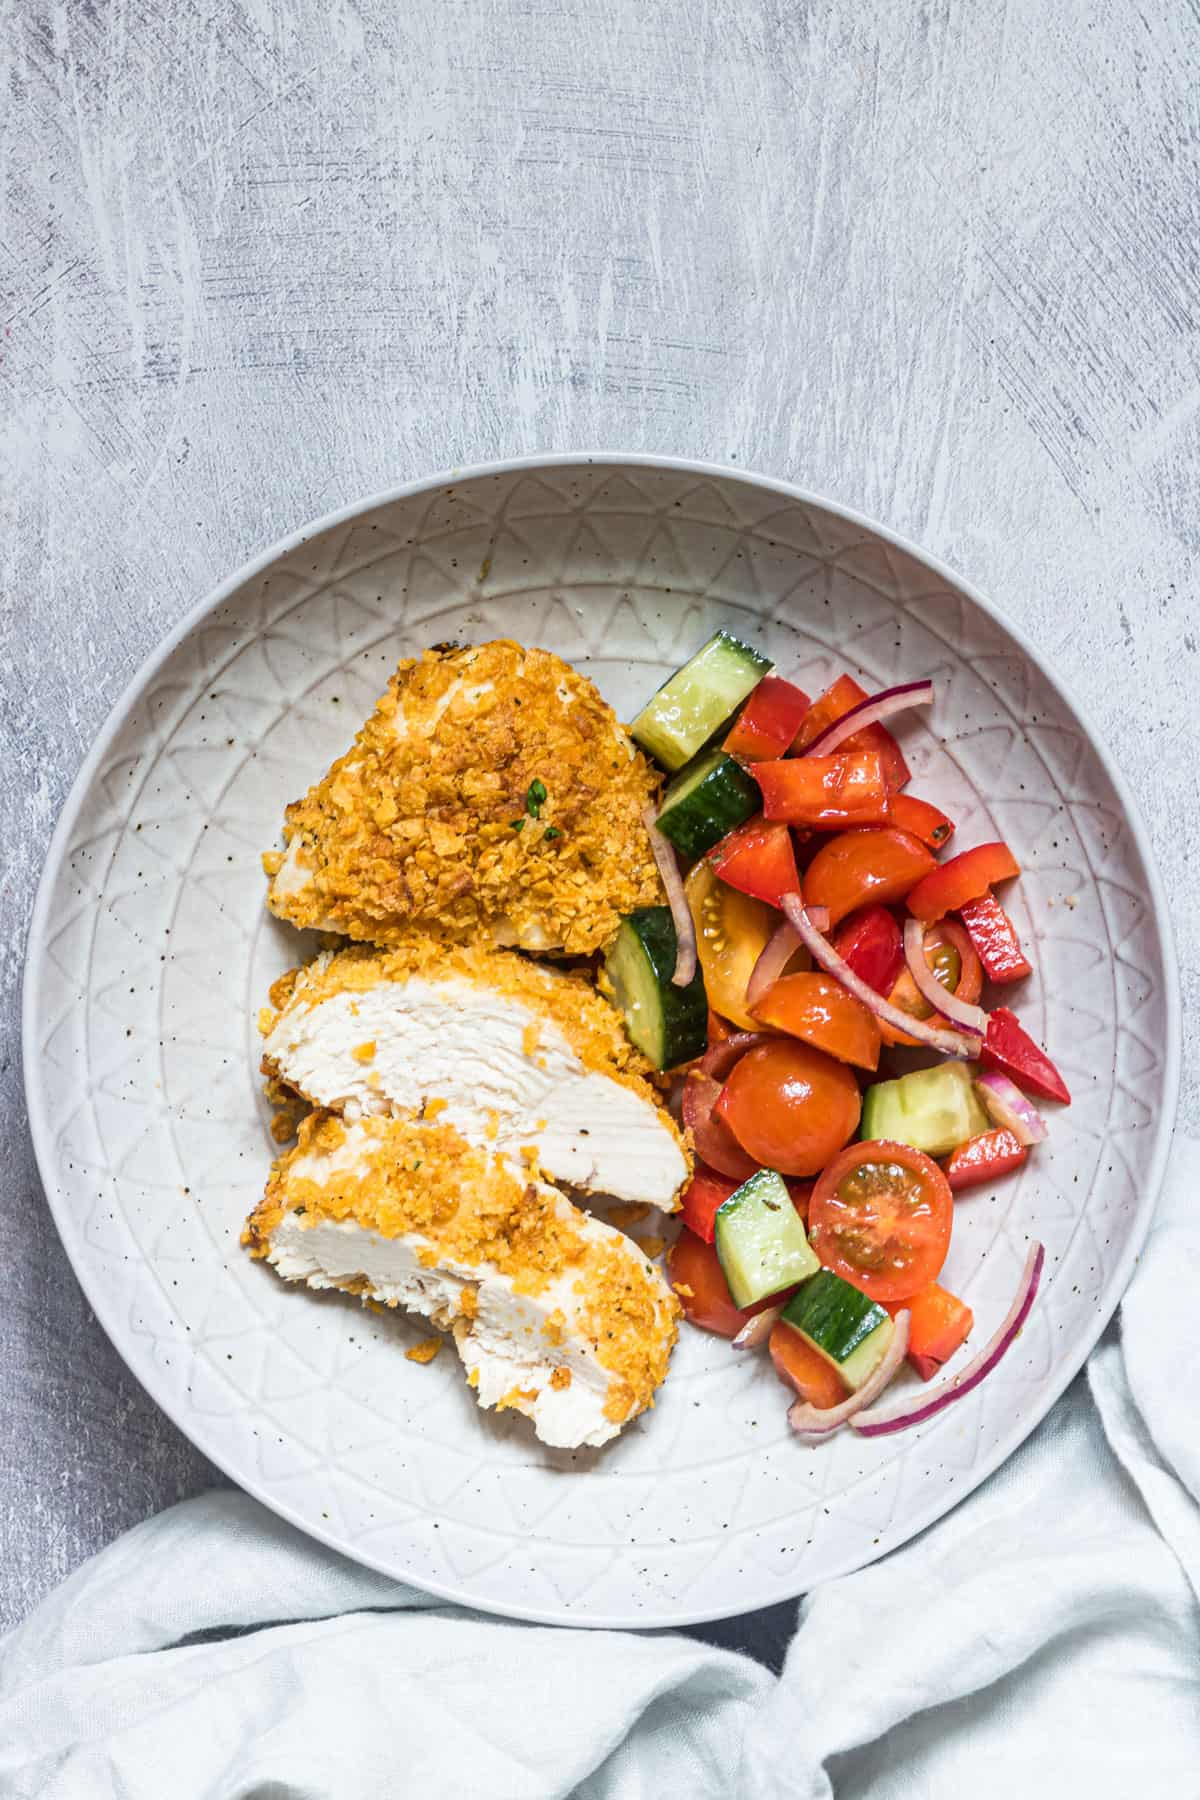 sliced baked chicken breast in a bowl with some salad